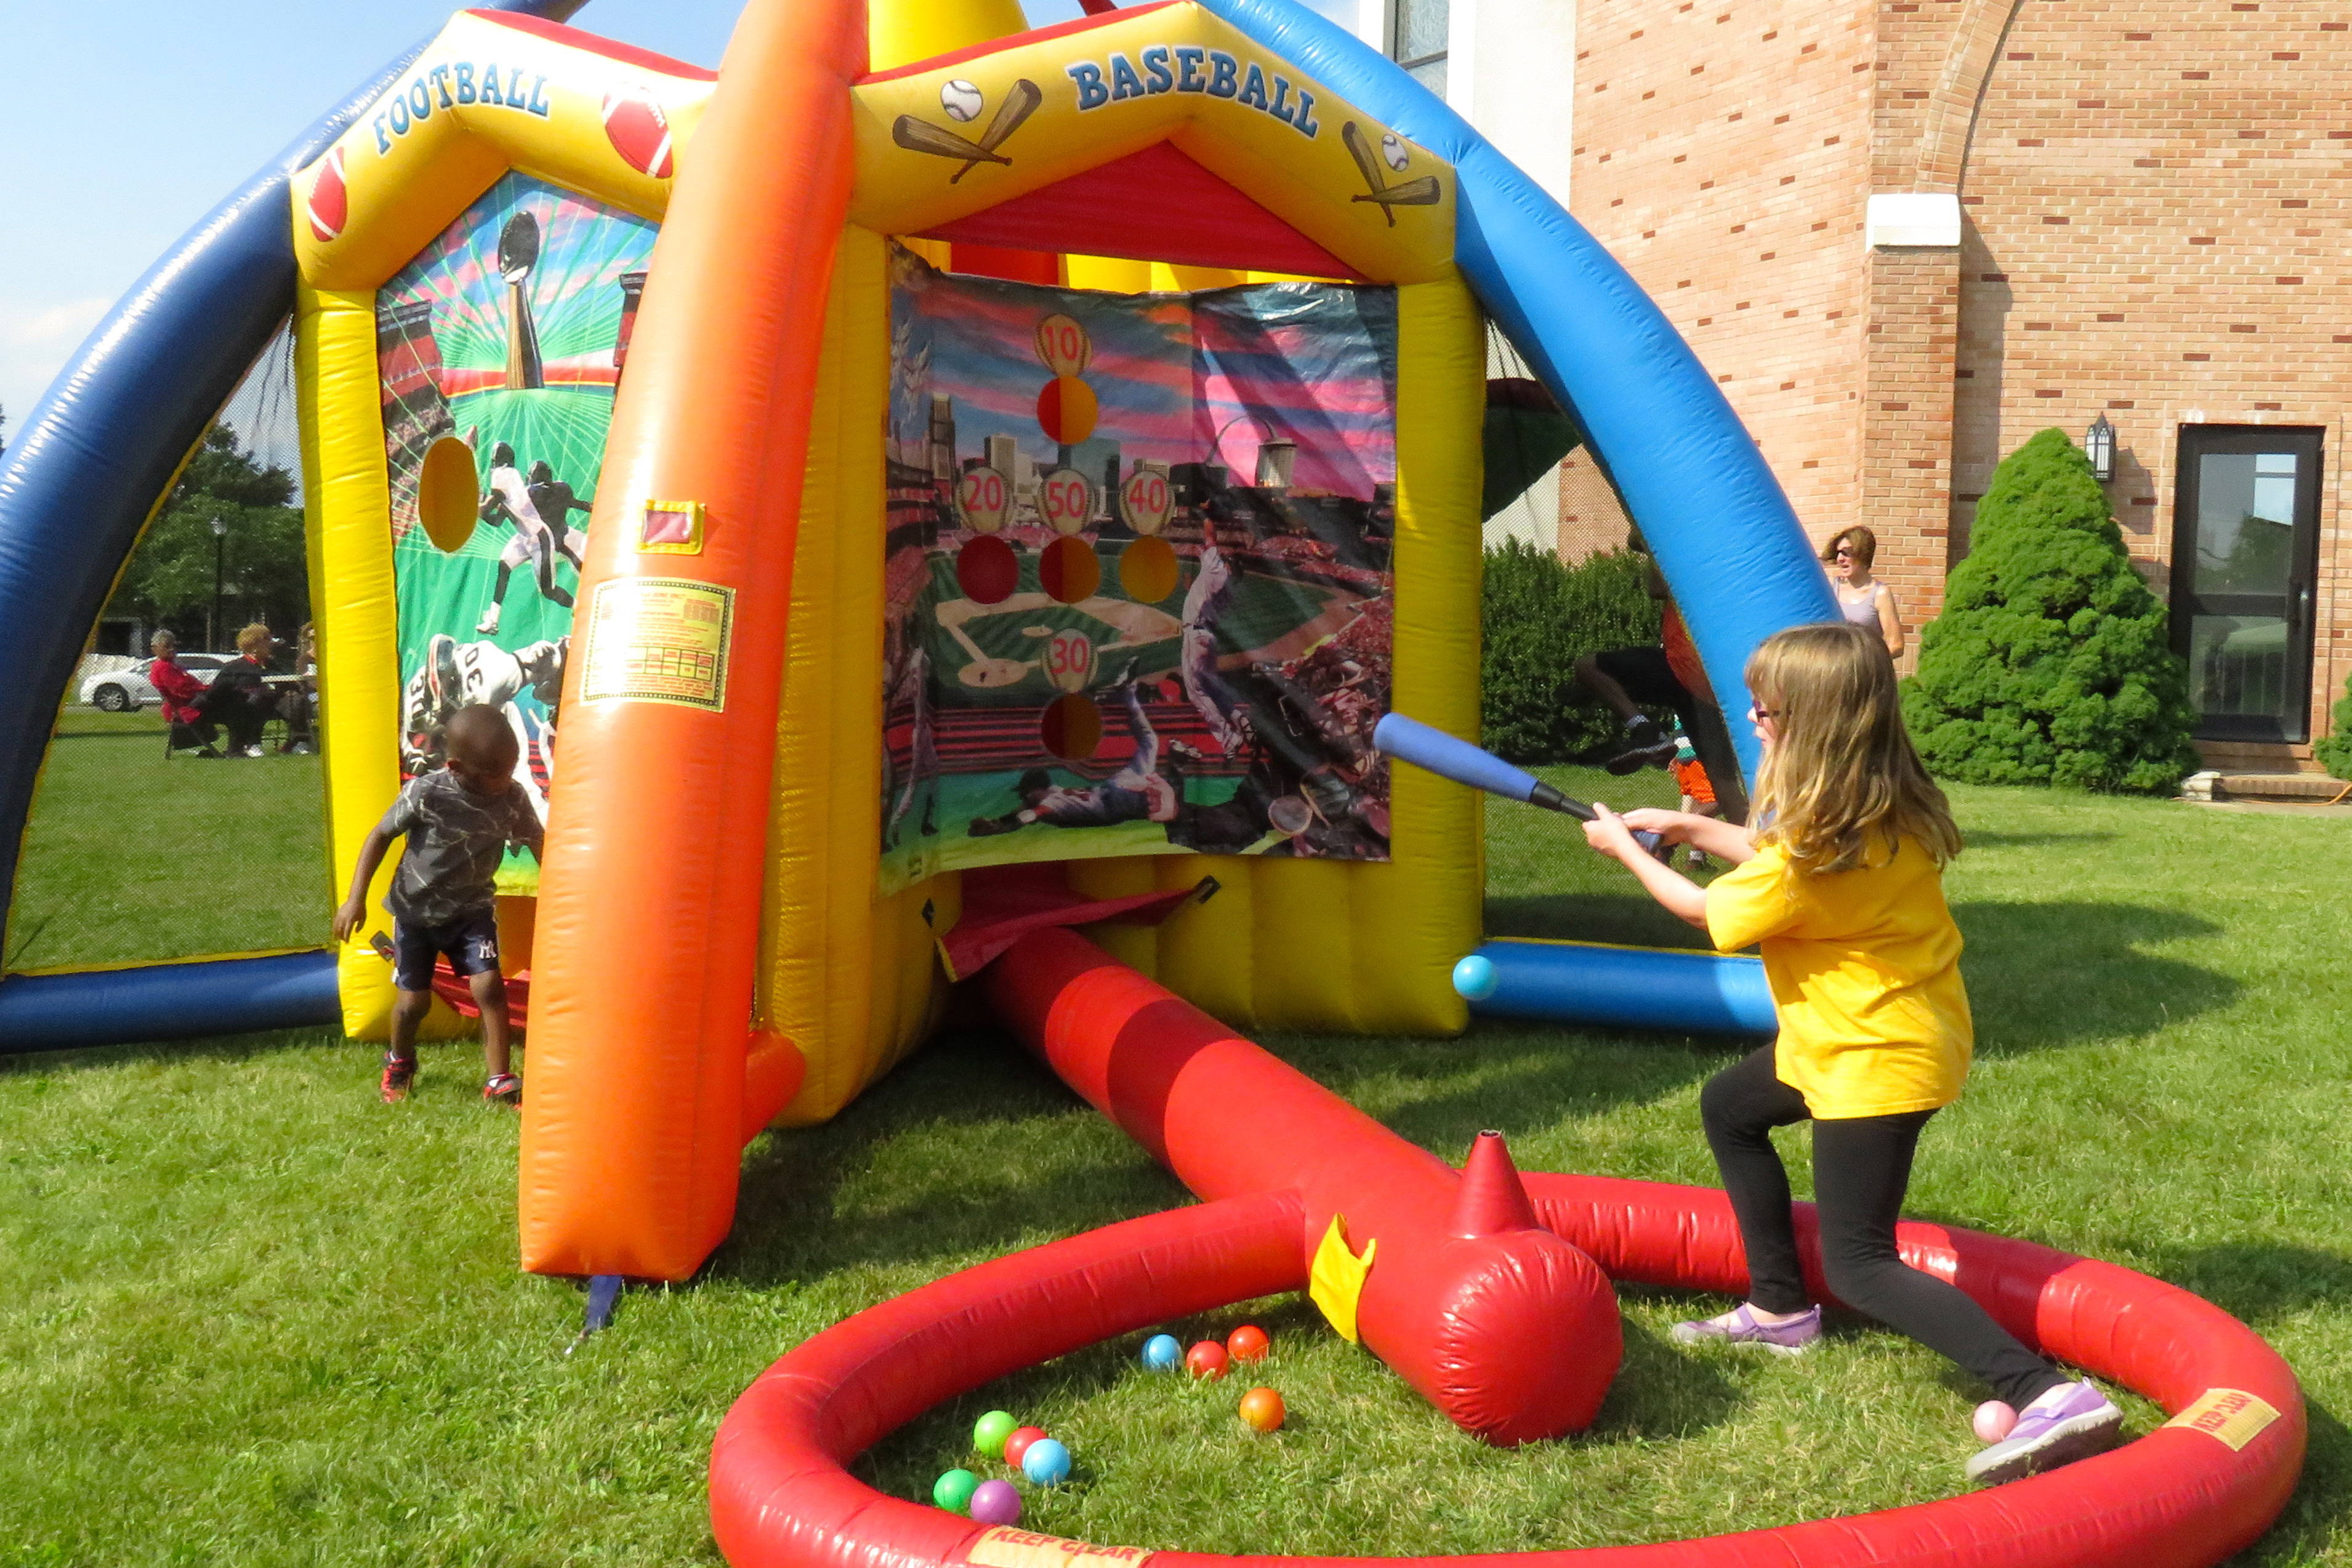 679e6fd409ed89d61680_Community_Fun_Day_Sports_Arena-3x2.JPG